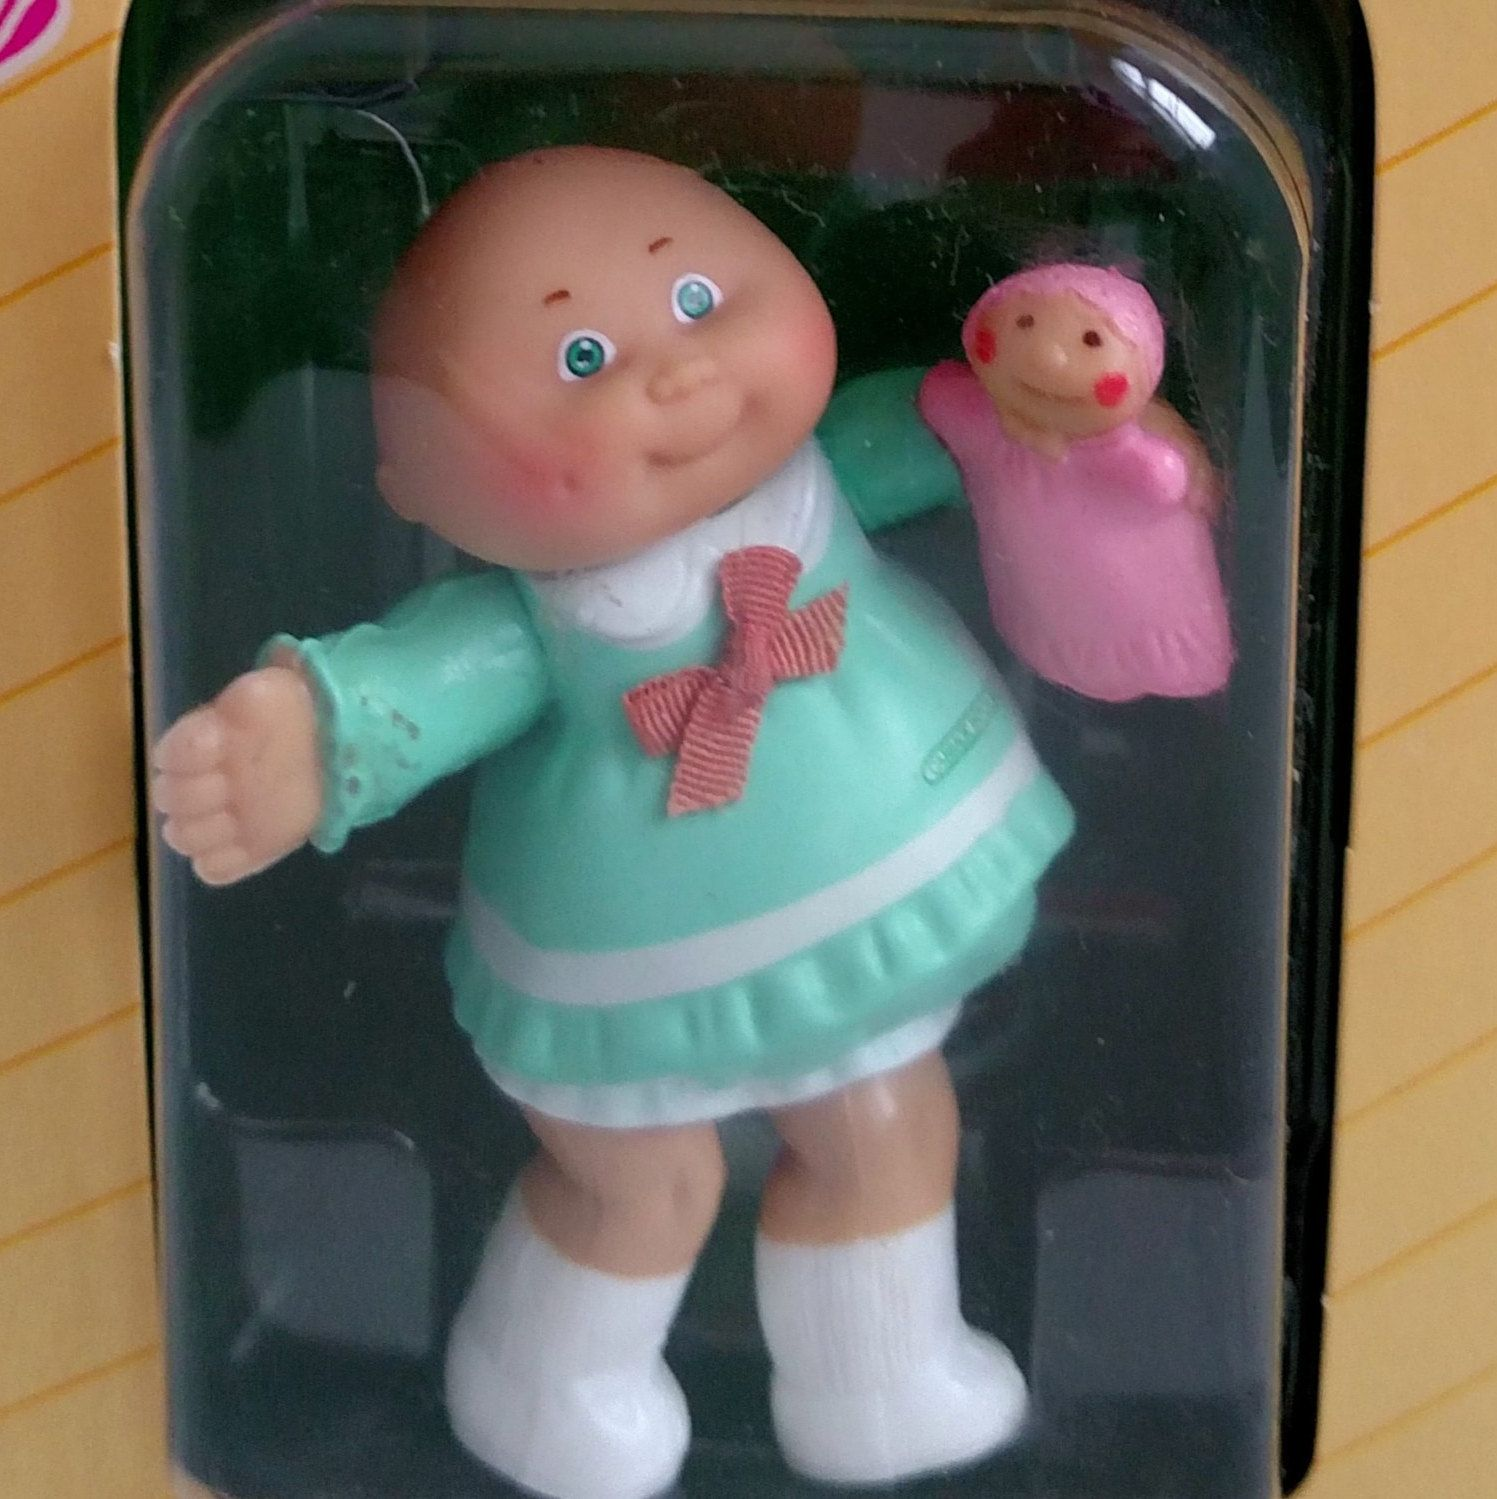 1984 Cabbage Patch Kids First Edition Poseable Figure In Etsy Cabbage Patch Kids Cabbage Patch Dolls Holding Baby